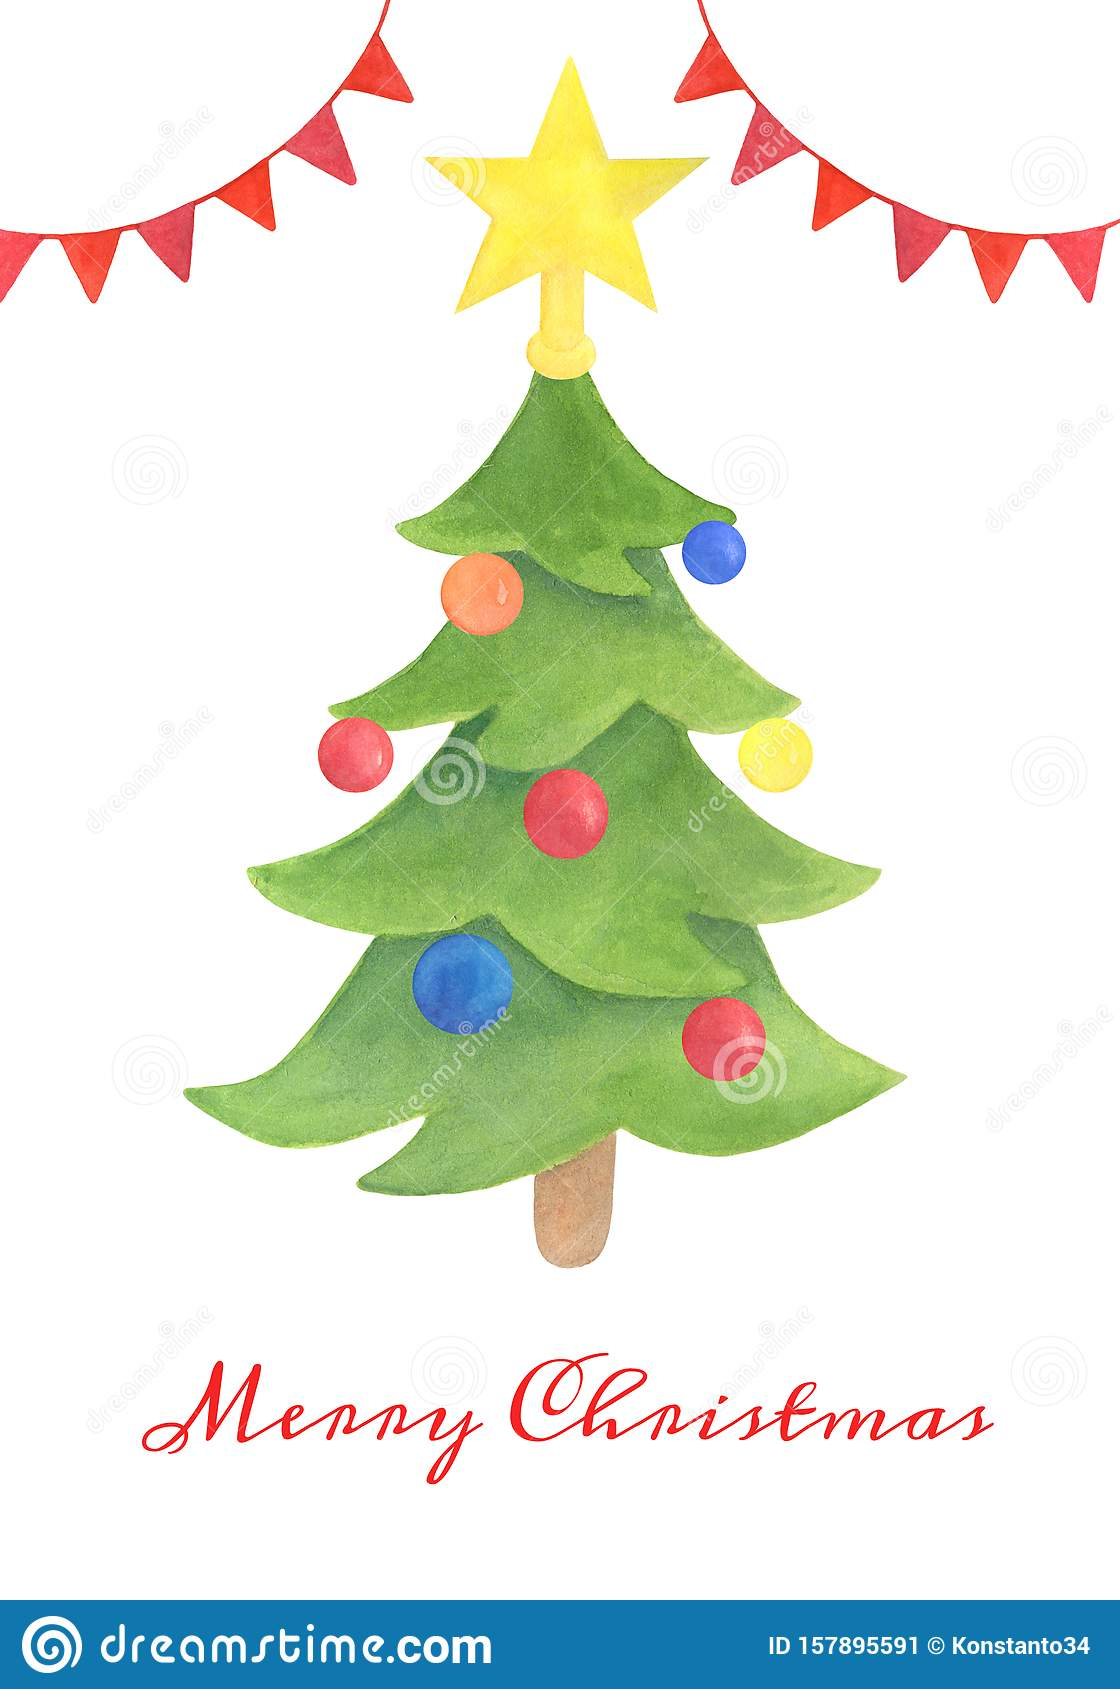 Watercolor Vintage Christmas Template For Greeting Card Postcard Decoration Hand Drawn Xmas Tree With Balls And Star Topper Stock Illustration Illustration Of Hand Background 157895591